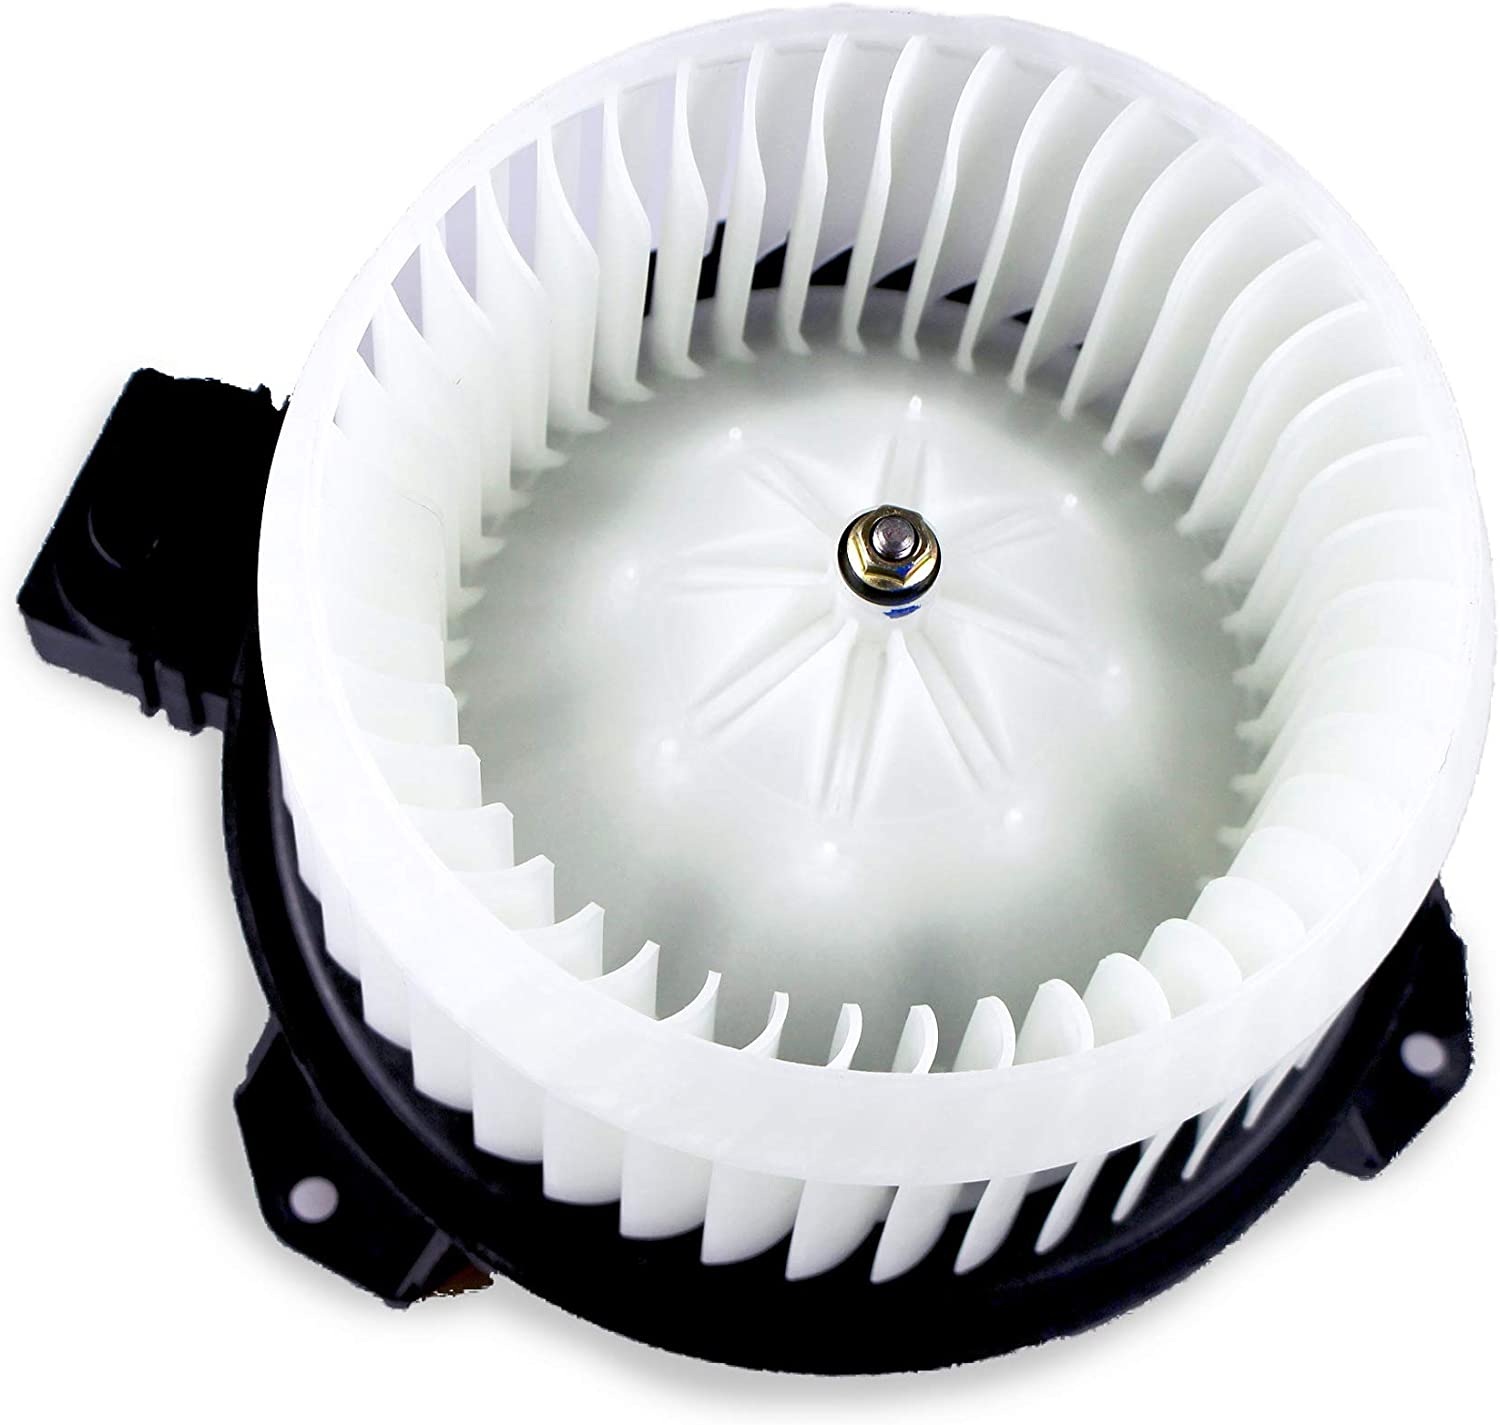 MYSMOT Blower Motor Fan Assembly Compatible with Toyota Yaris 2007-2012, Scion xD 2008-2013, 87103-52141